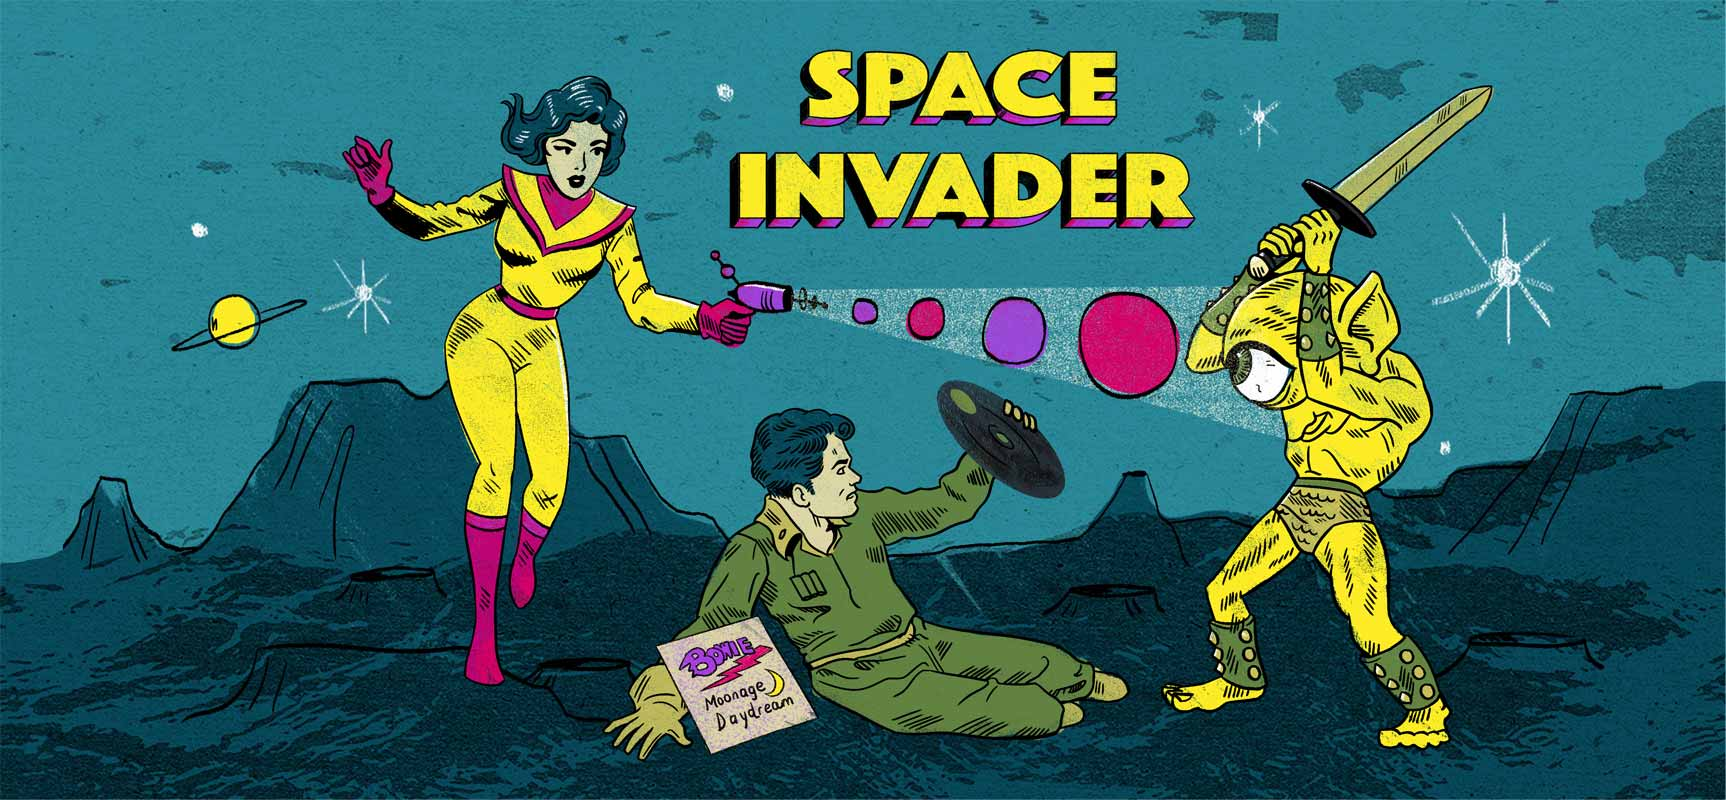 Space Invader video placeHolder